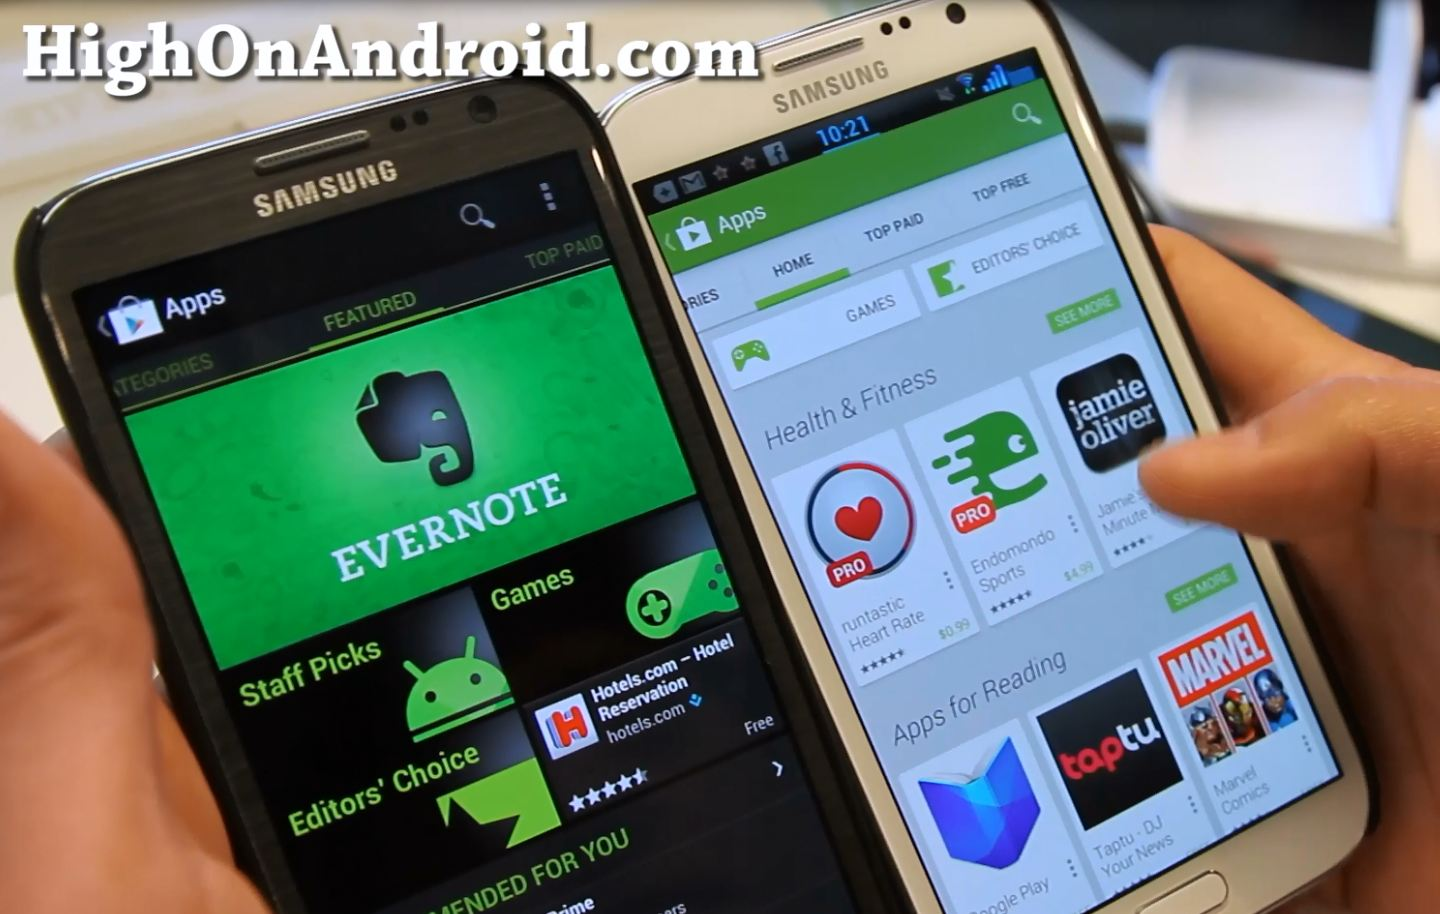 Android Apps On Google Play: How To Flash IMG Files On Rooted Android With Flashify App